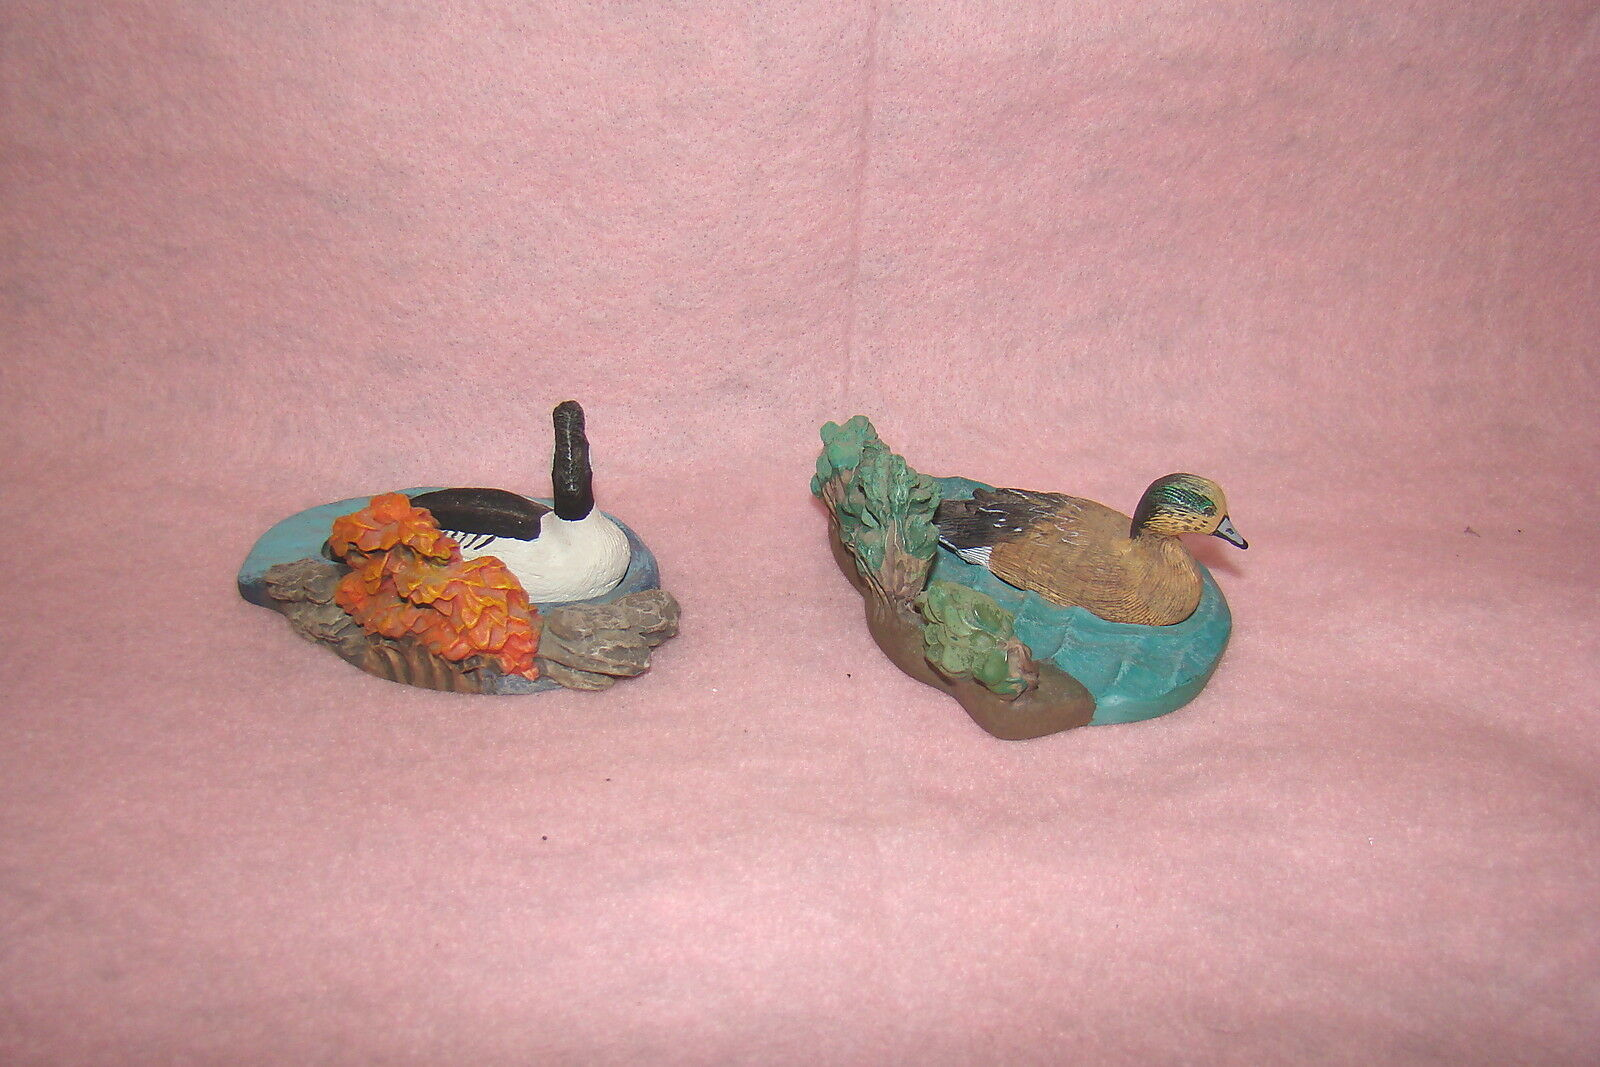 Set of Two Common Goldeneye and American Widgeon Avon Collectible Figurines